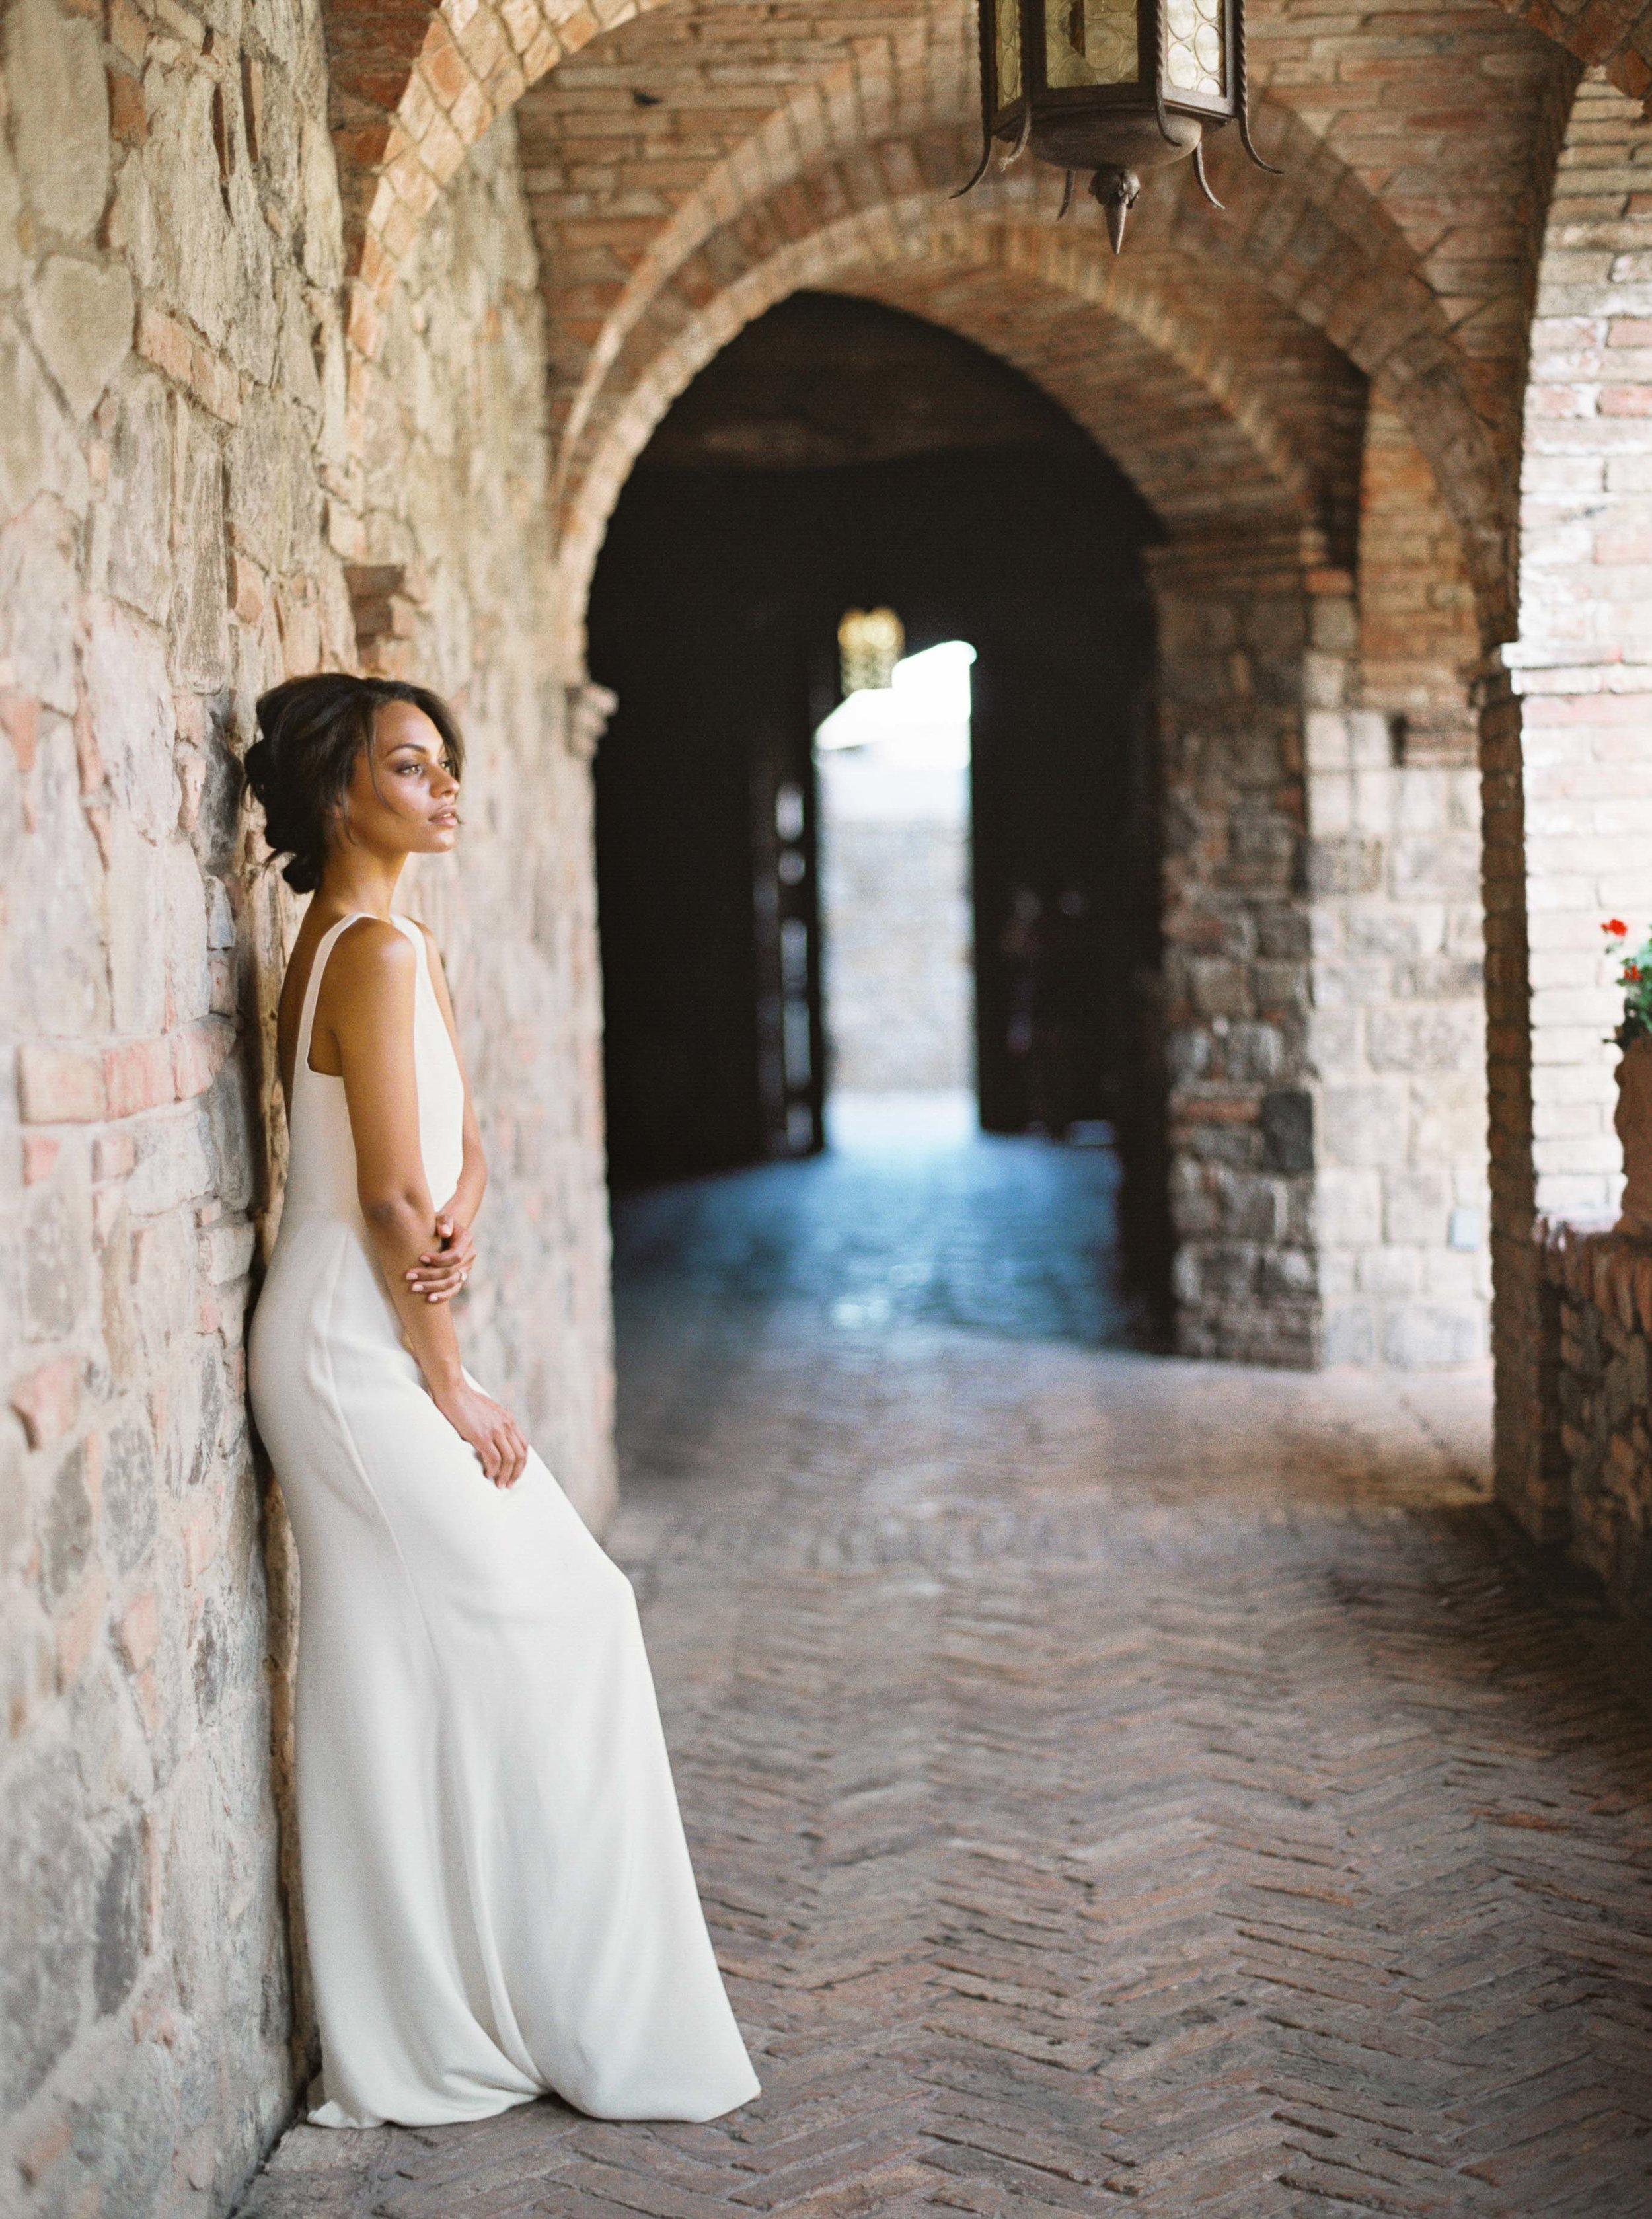 017napa_wedding_photographer_and_videographer_destination_and_elopement_photography.jpg